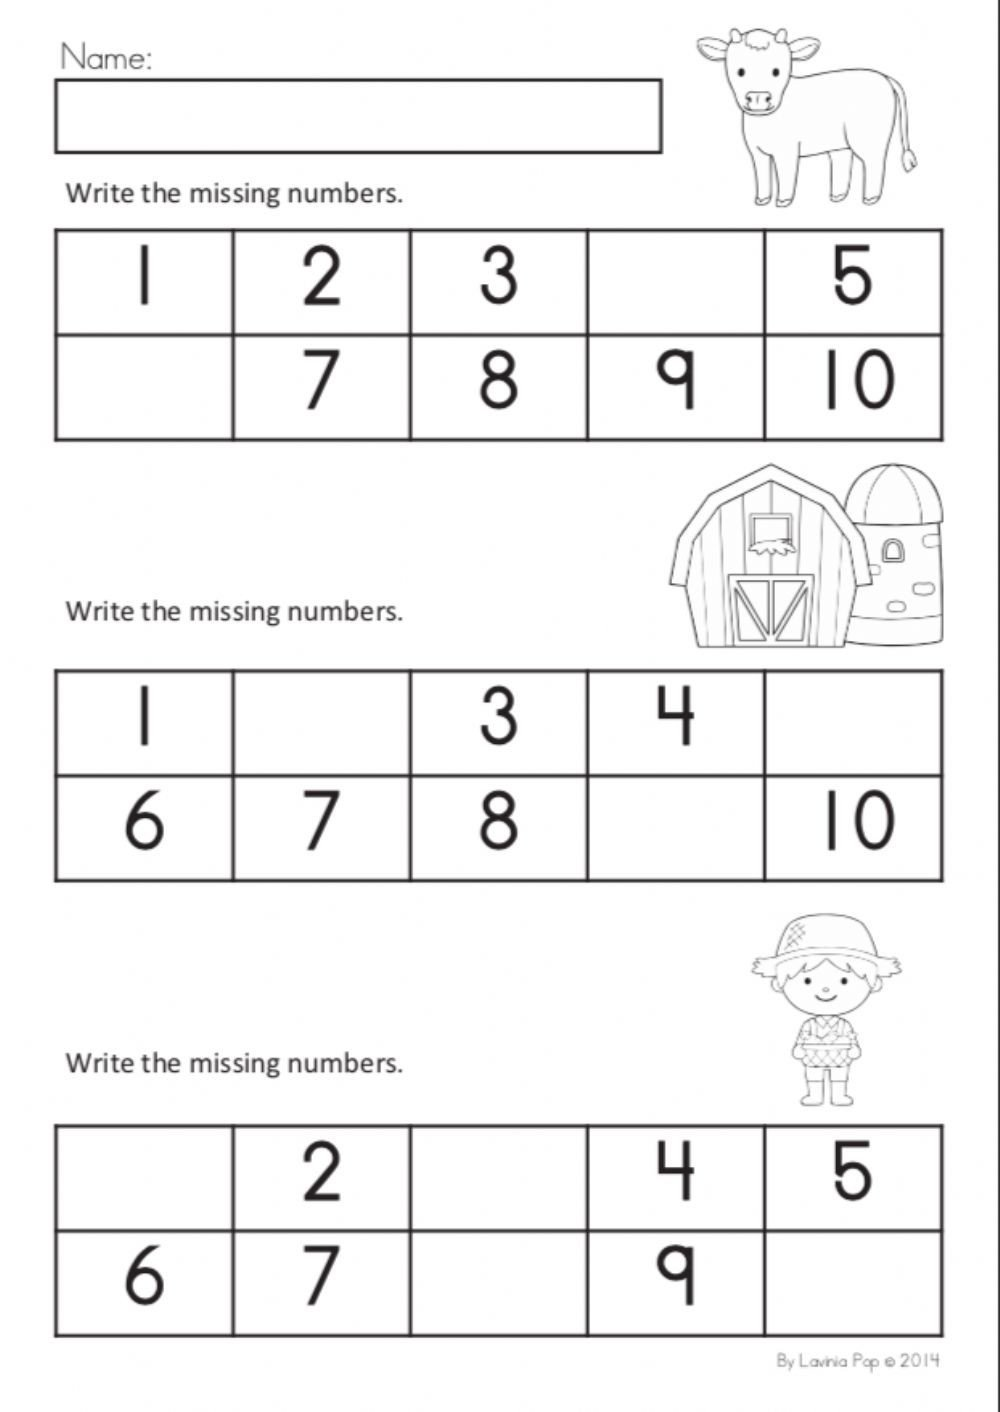 Missing Number Worksheets 1 10 Missing Numbers 1 10 Interactive Worksheet